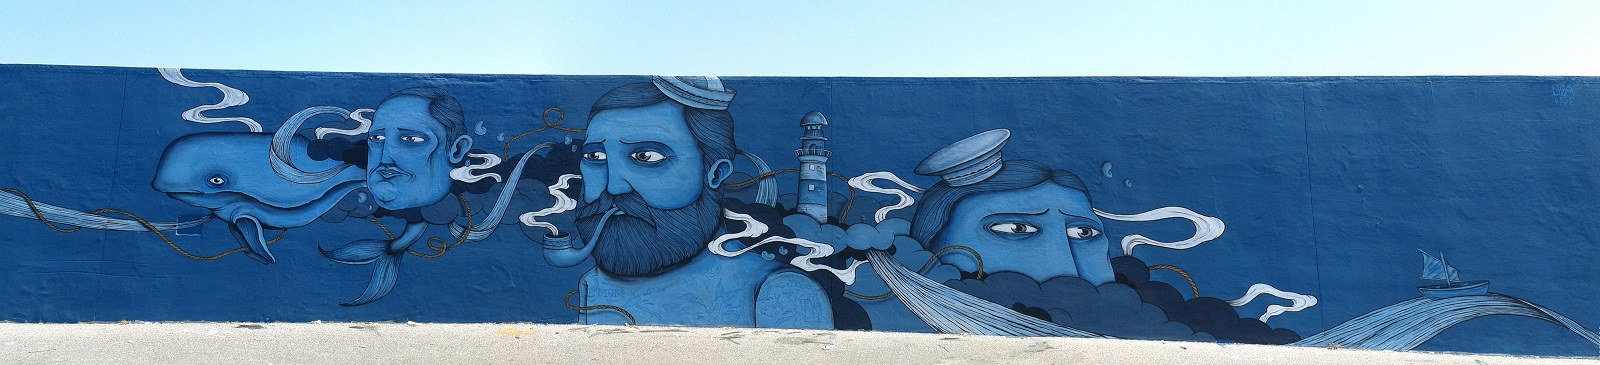 seacreative-new-mural-in-civitanova-marche-01